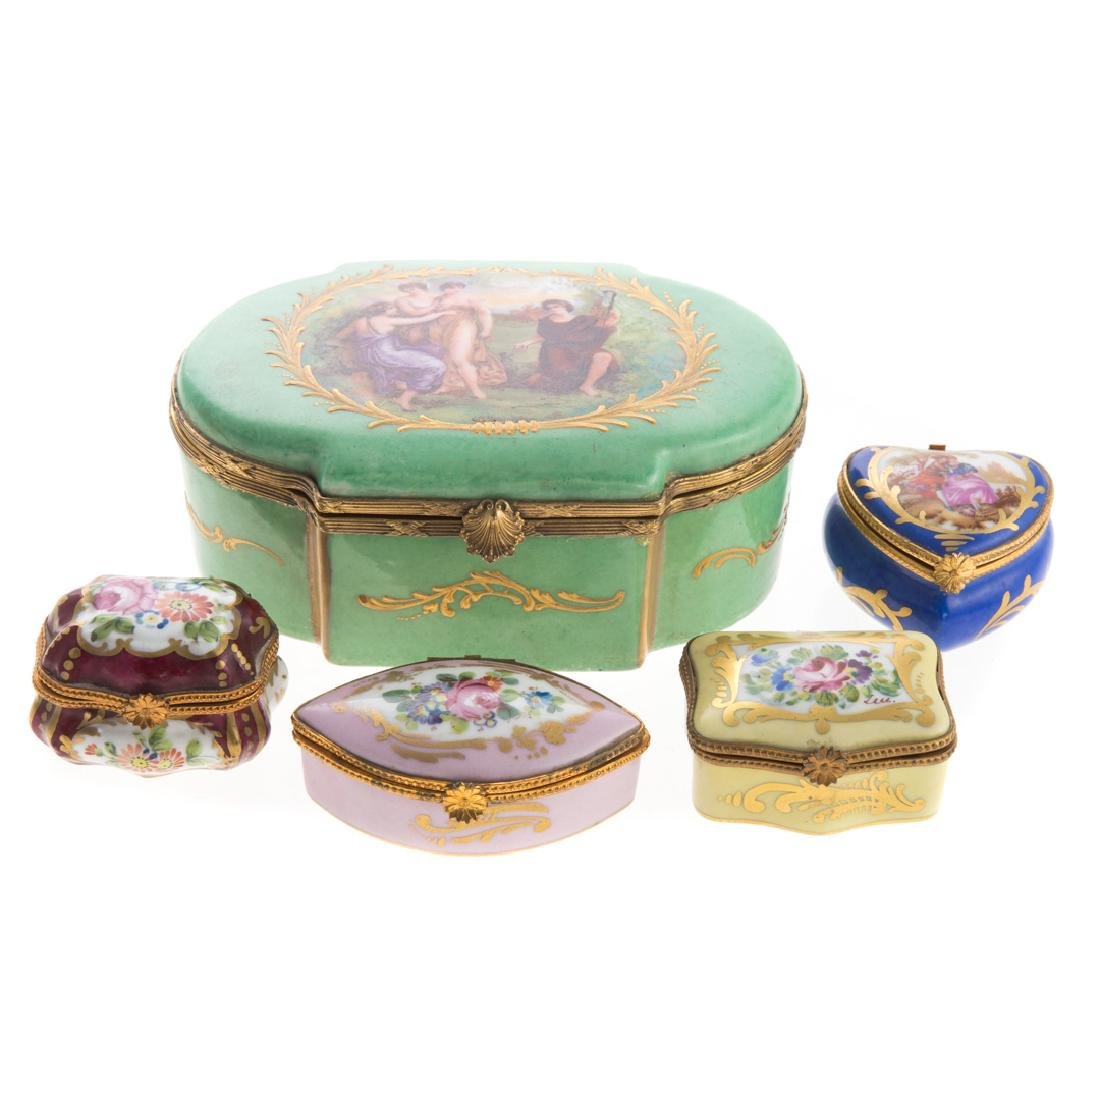 Five French porcelain vanity boxes - 2